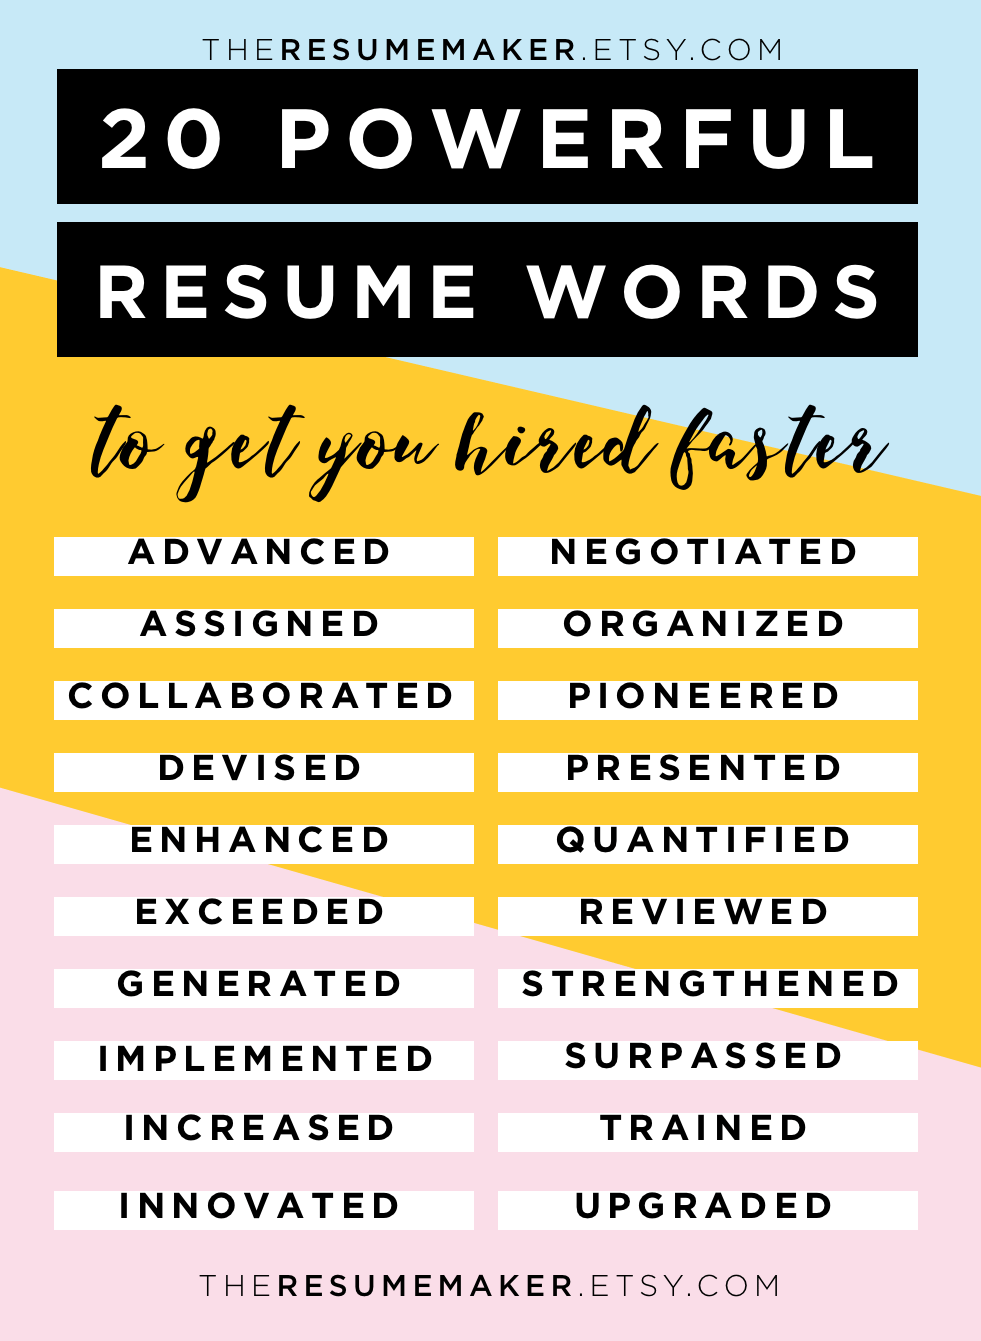 10 MOST IMPORTANT THINGS TO REMEMBER WHEN UPDATING YOUR RESUME